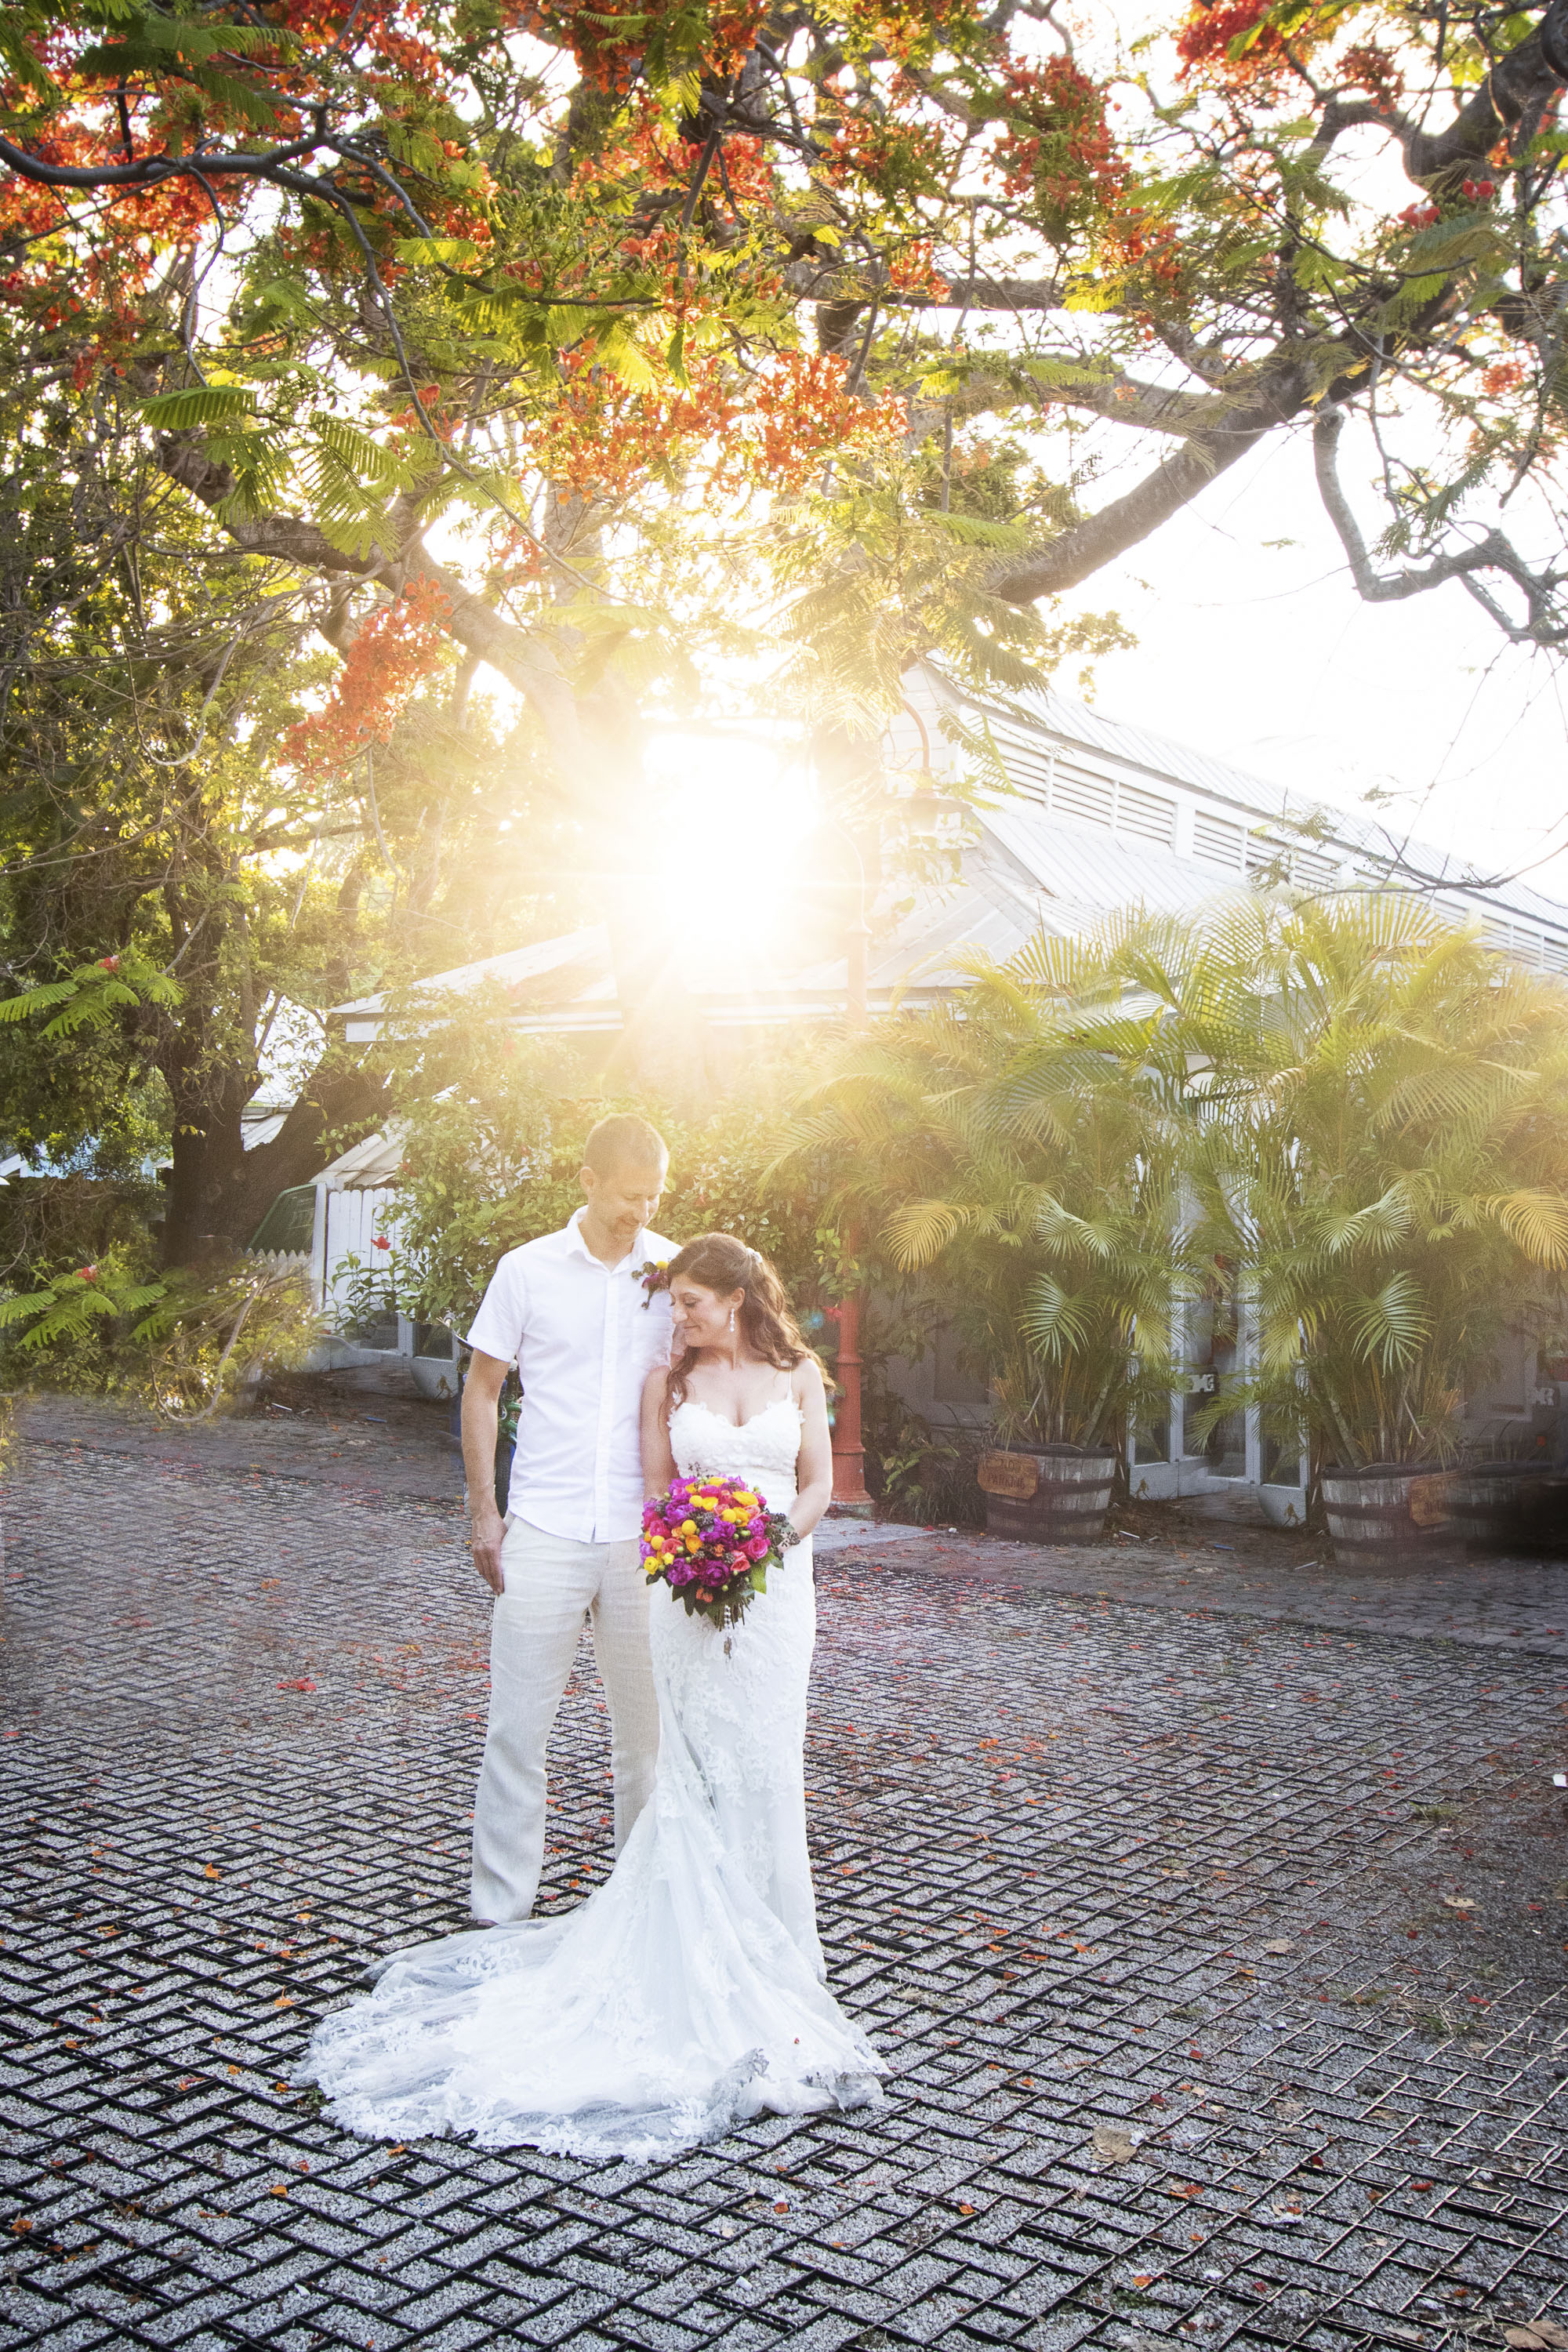 The Glow of the Key West sunset behind a poinciana tree for a married couple